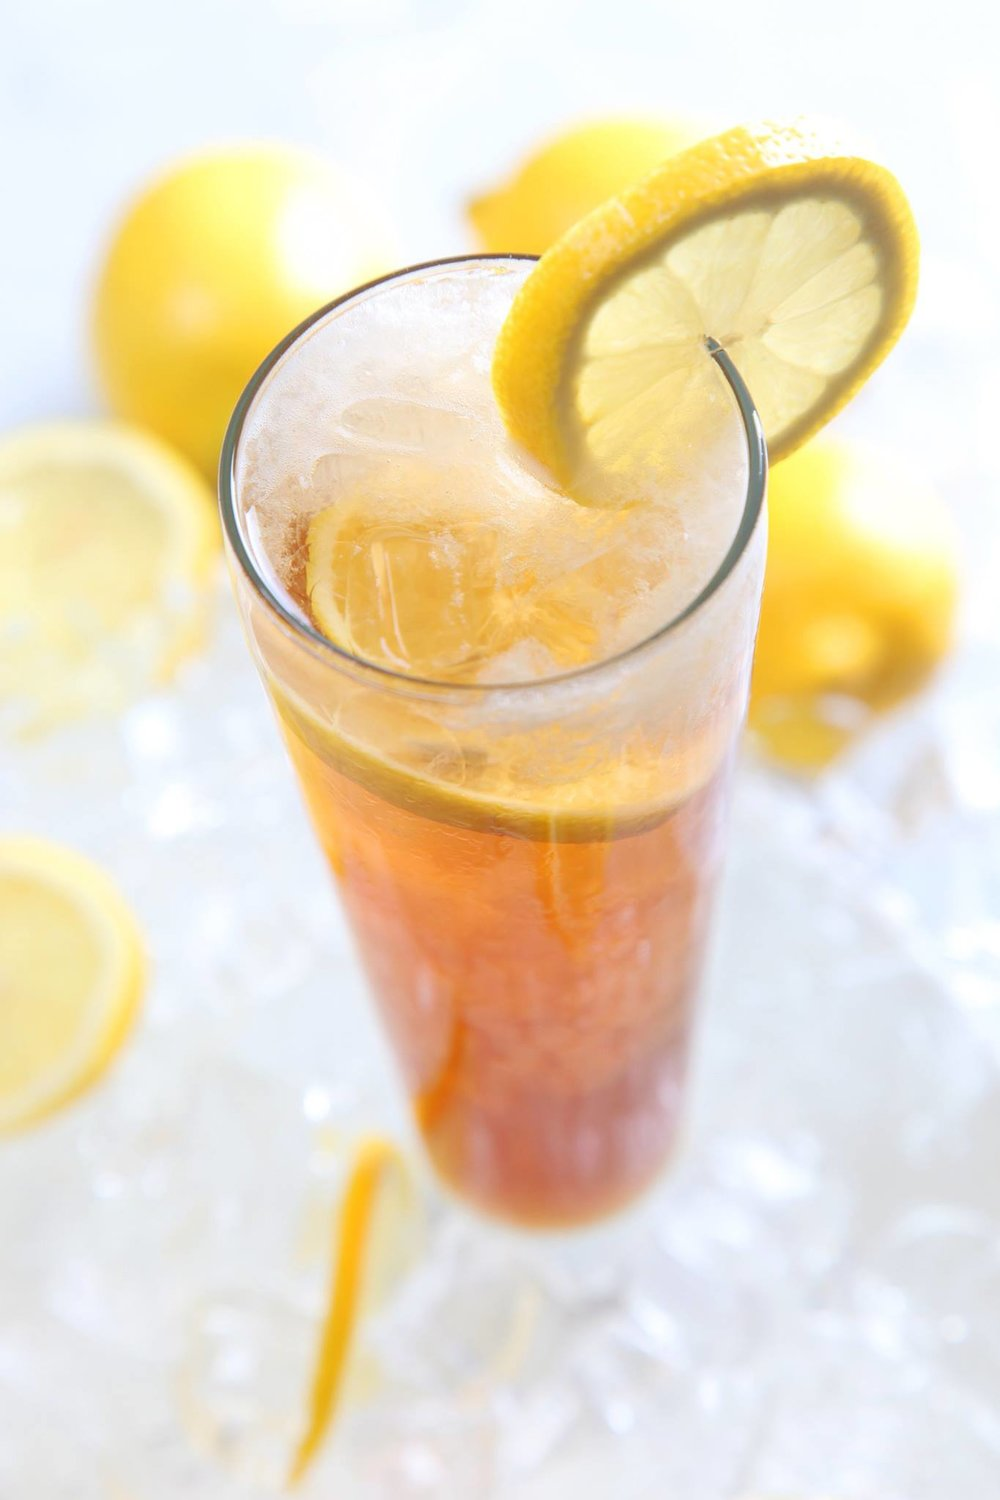 Next level tea... - Try My T is the next level gourmet iced tea. Lightly sweetened with agave nectar, a delicate blend of all-natural fruit juices and a hint of mint. It's super refreshing, crisp and clean. Enjoy the Experience!